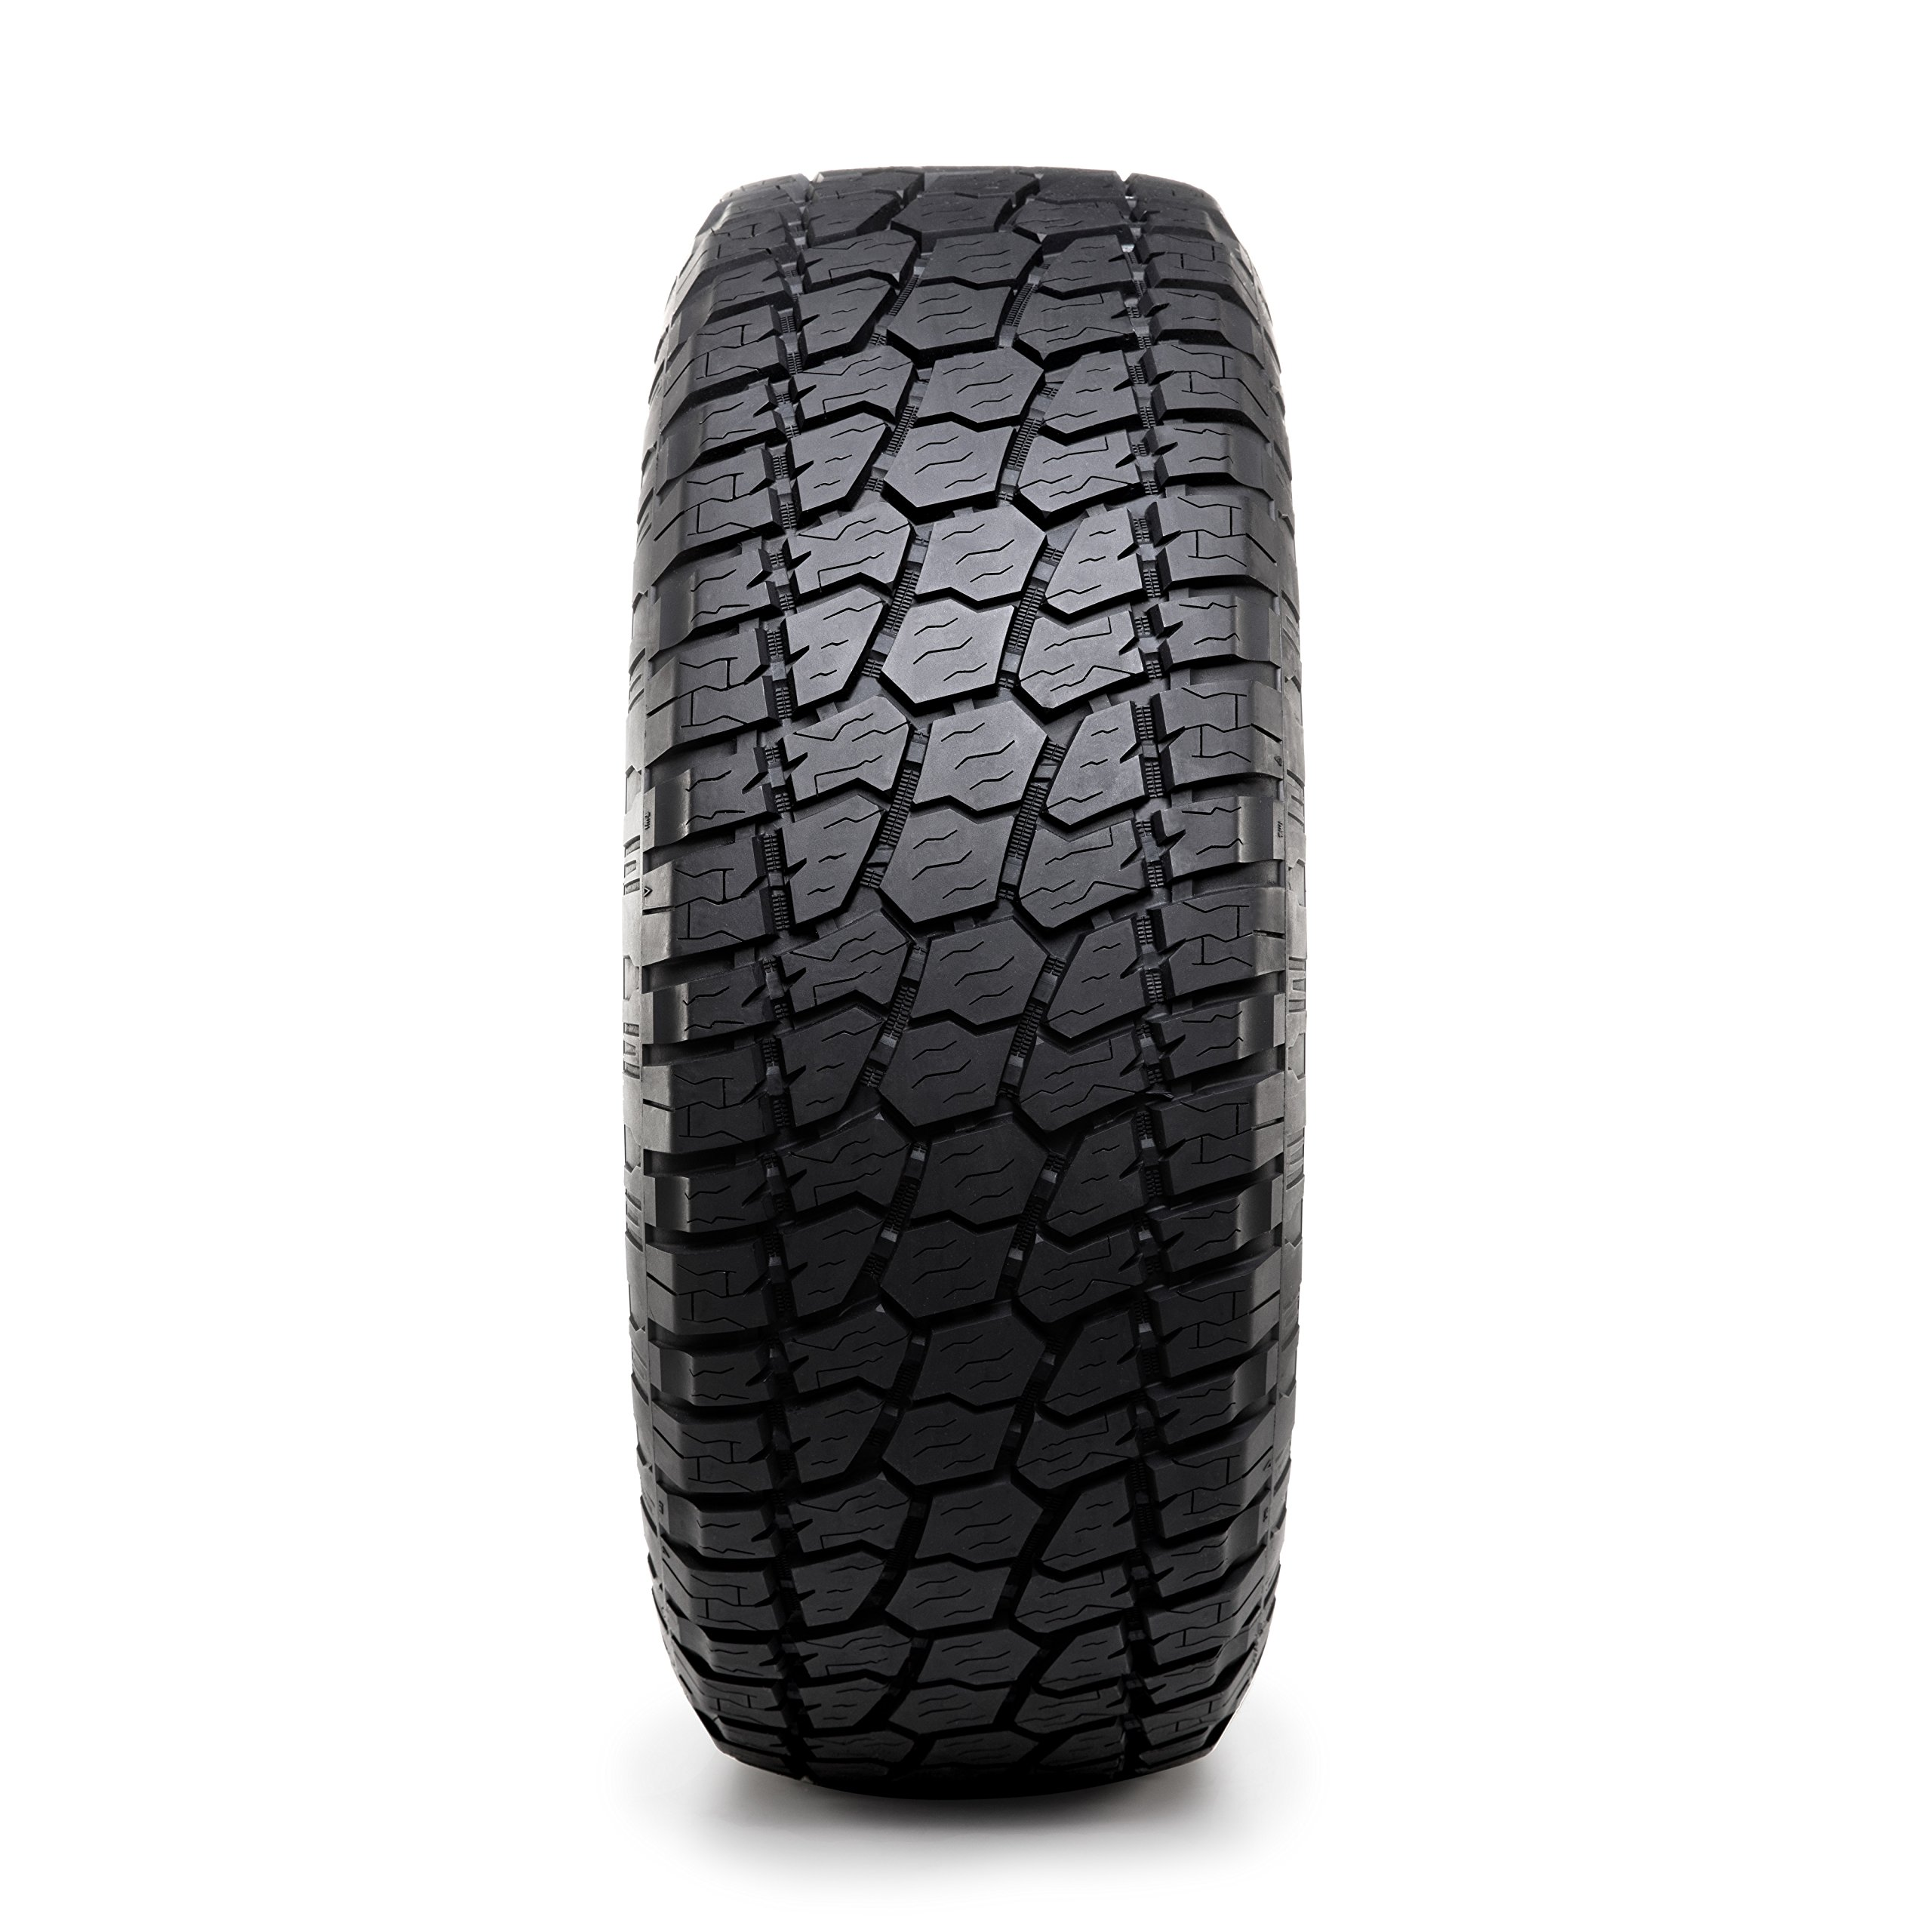 Radar Renegade A/T5 All-Terrain Radial Tire - 265/50R20 112V by Radar (Image #2)